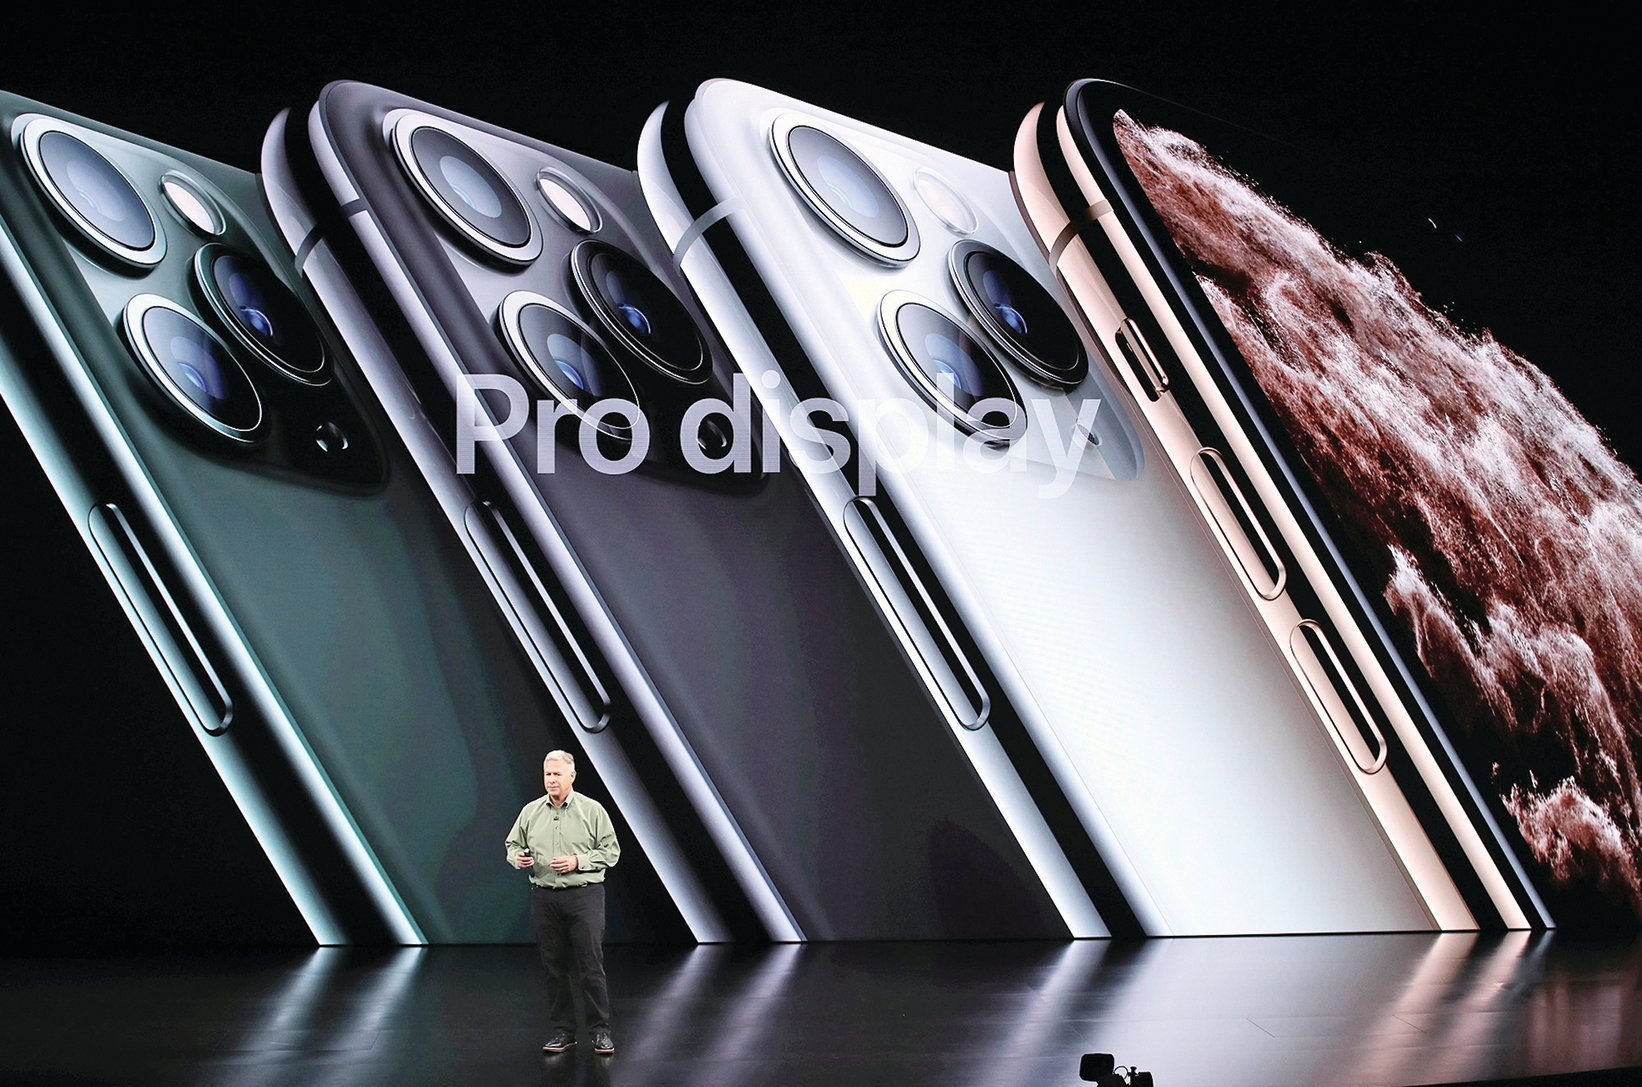 2019年9月10日發表的iPhone 11 Pro。(Getty Images)